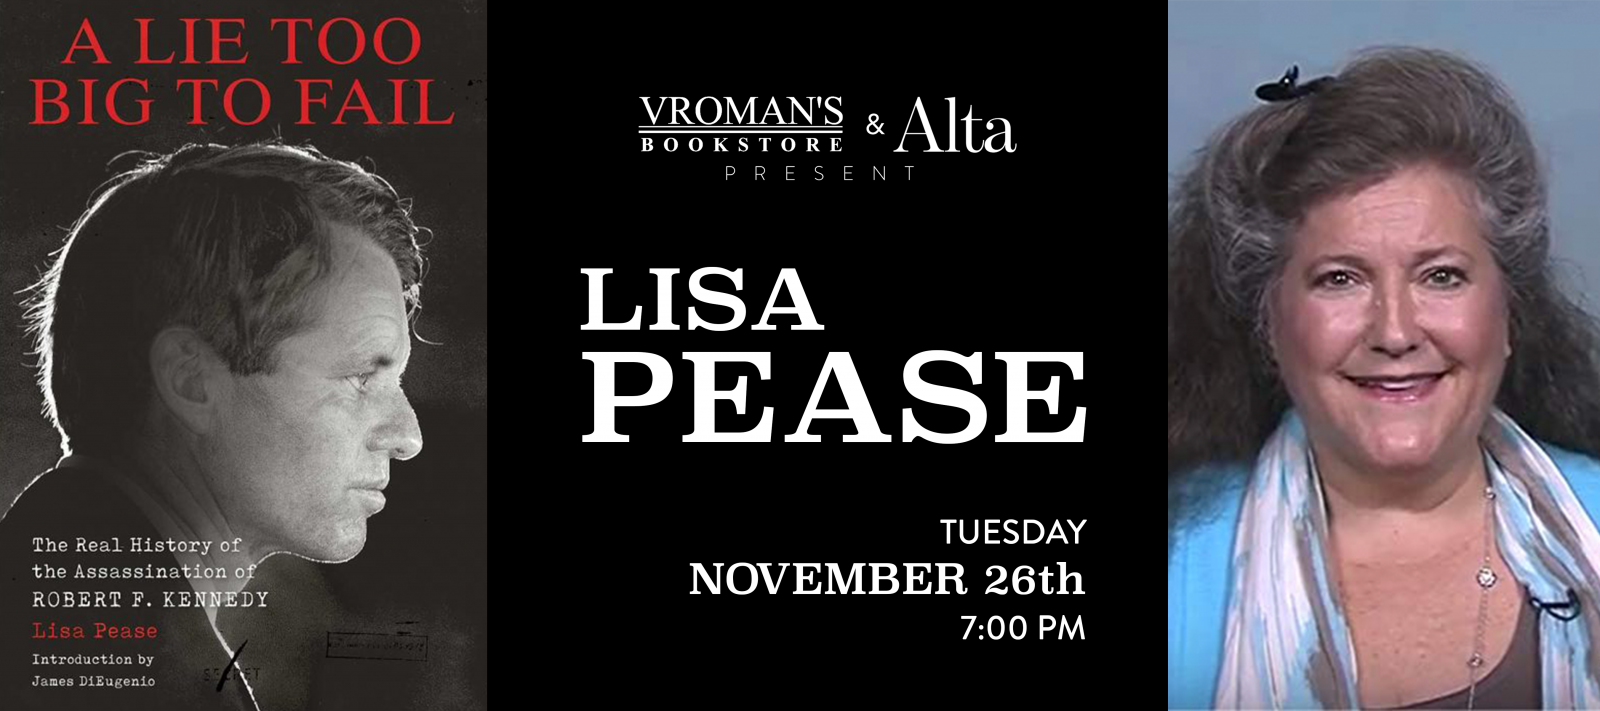 book signing with Lisa Pease Tuesday November 26 at 7pm